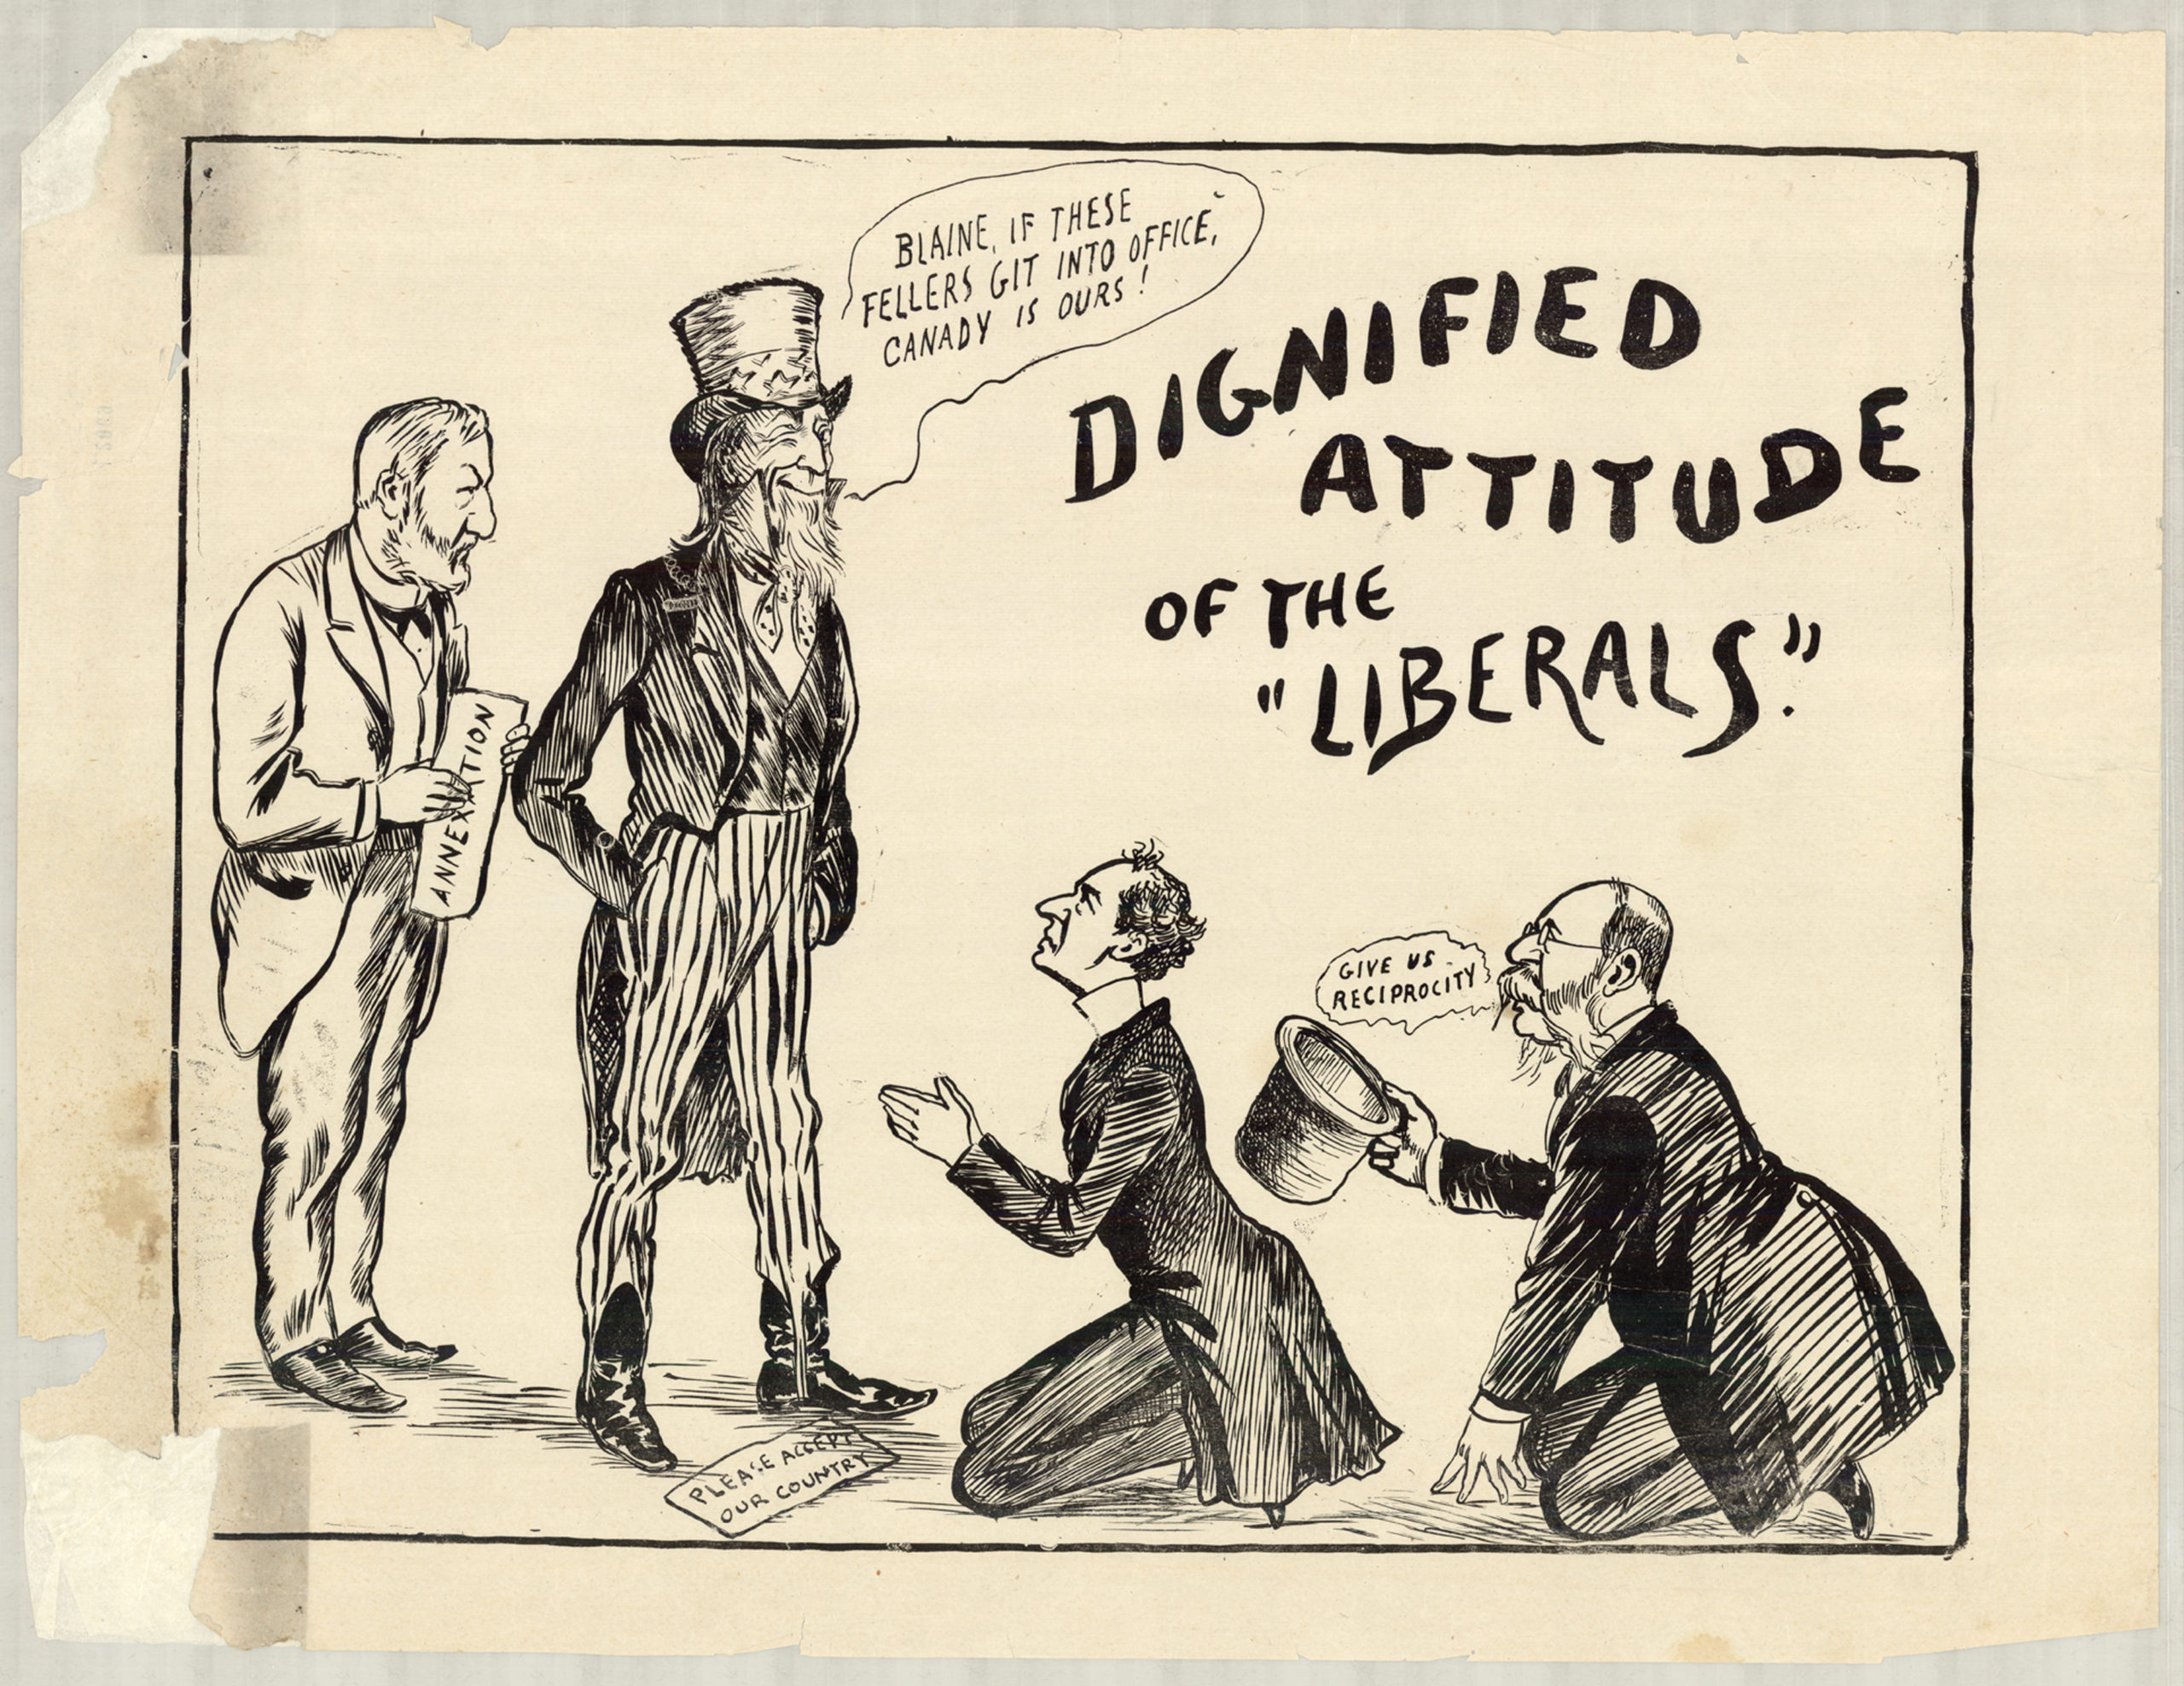 """Two men beg at the feet of Uncle Sam. This cartoon shows Uncle Sam standing before two men in fine black suits. Uncle Sam is saying """"BLAINE, IF THESE FELLERS GIT INTO OFFICE, CANADY IS OURS!"""" Behind him stands a man in a colorless suit holding a paper labeled """"ANNEXATION."""" At his feet, two Canadian men kneel. The first has his hands clasped together, and has lain at the feet of Uncle Sam a message that reads """"PLEASE ACCEPT OUR COUNTRY."""" The second man beckons to Uncle Sam with his top hat, and in a wavering text, says to him """"GIVE US RECIPROCITY."""""""